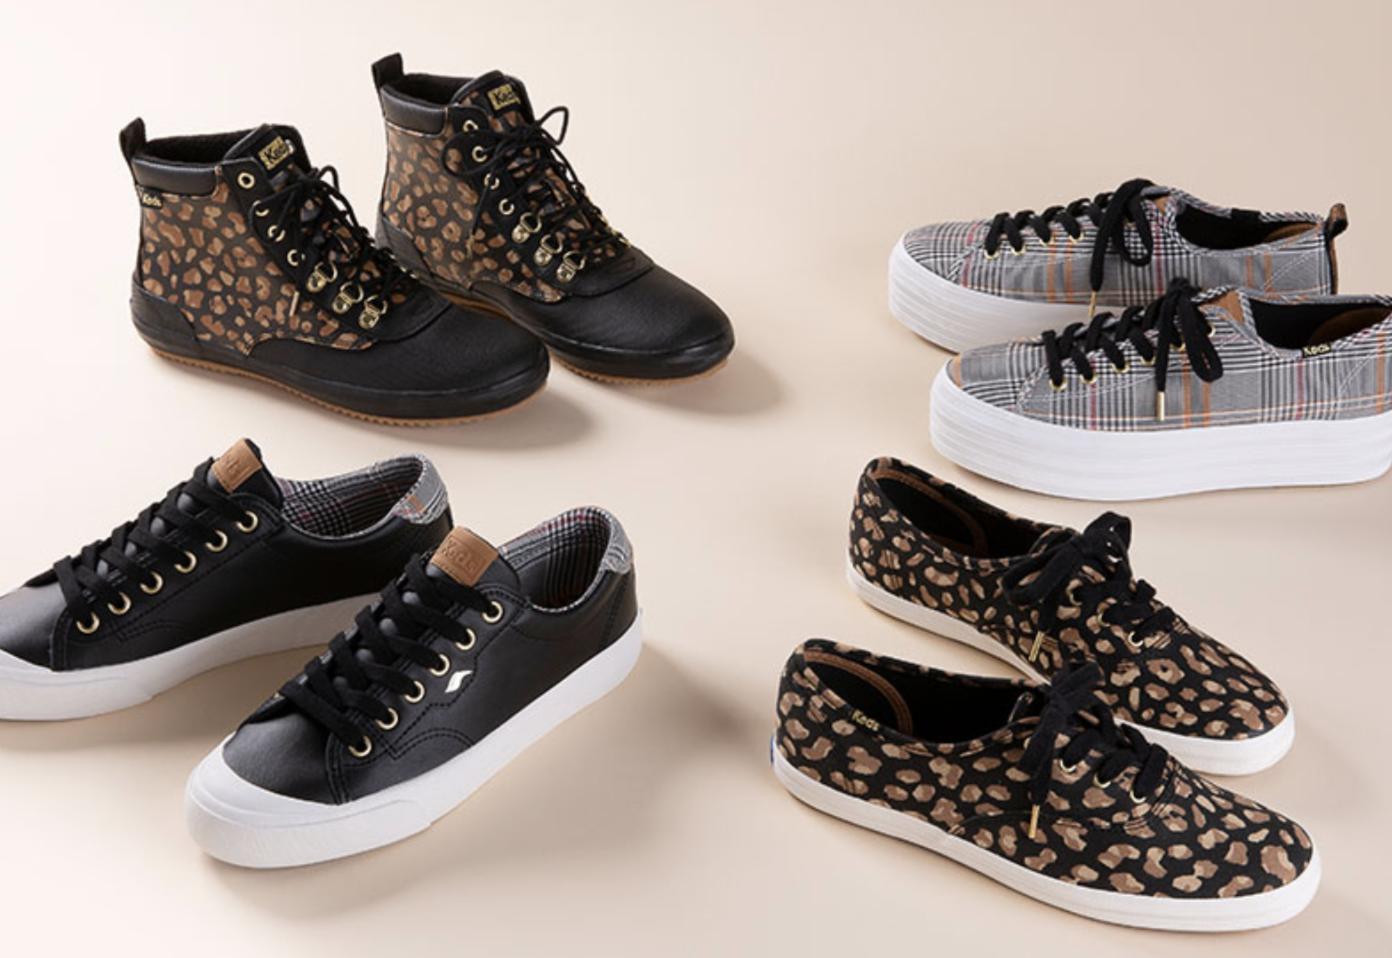 Four different styles of shoes from Keds ranging from patterned sneakers to boots